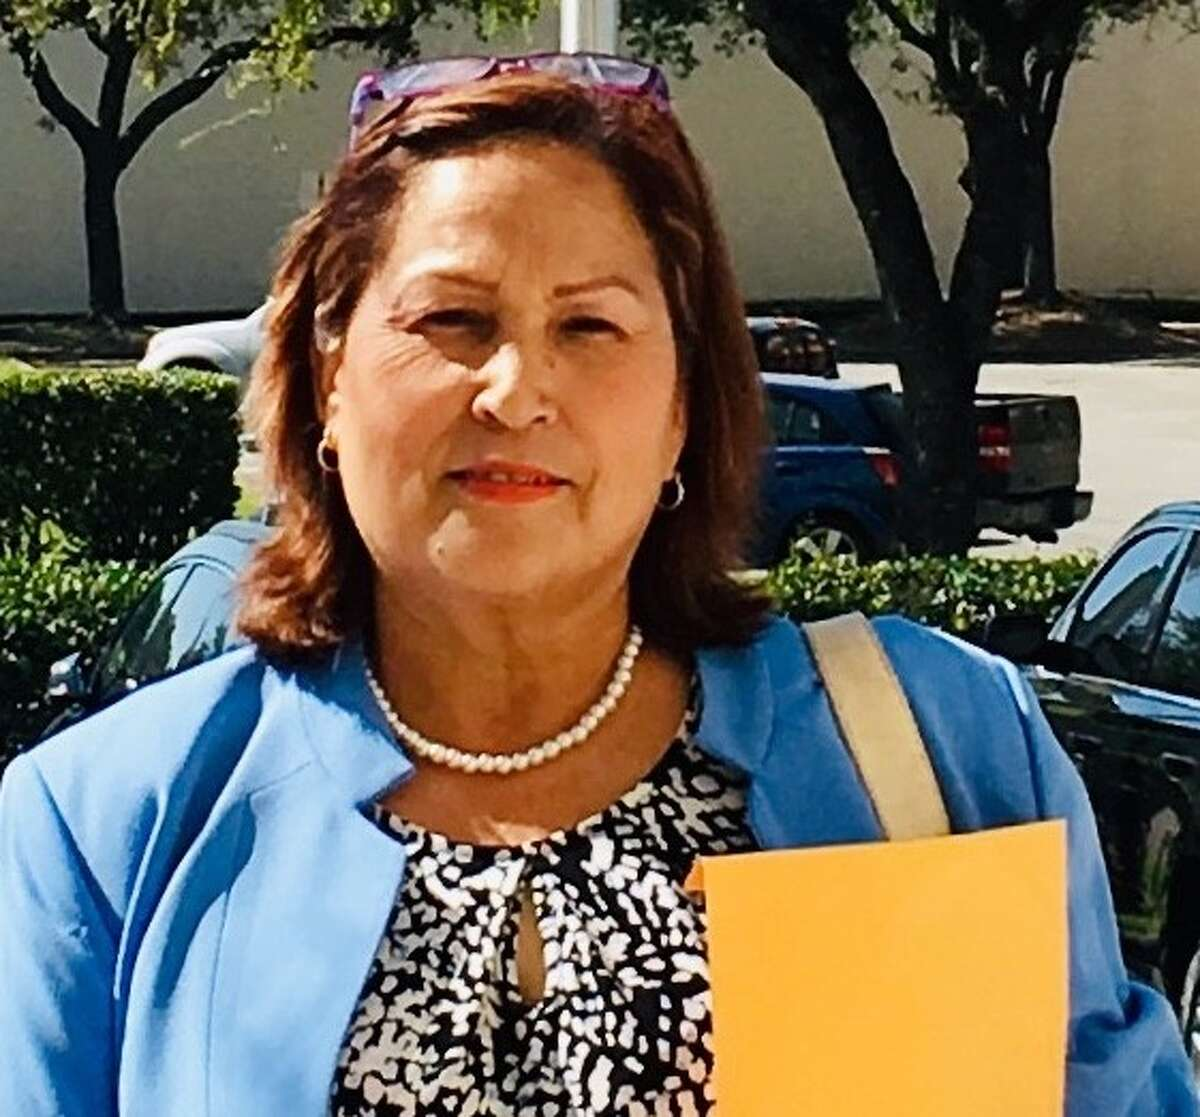 Blanca Sanchez is one of the three candidates in the Pasadena City Council District B race.